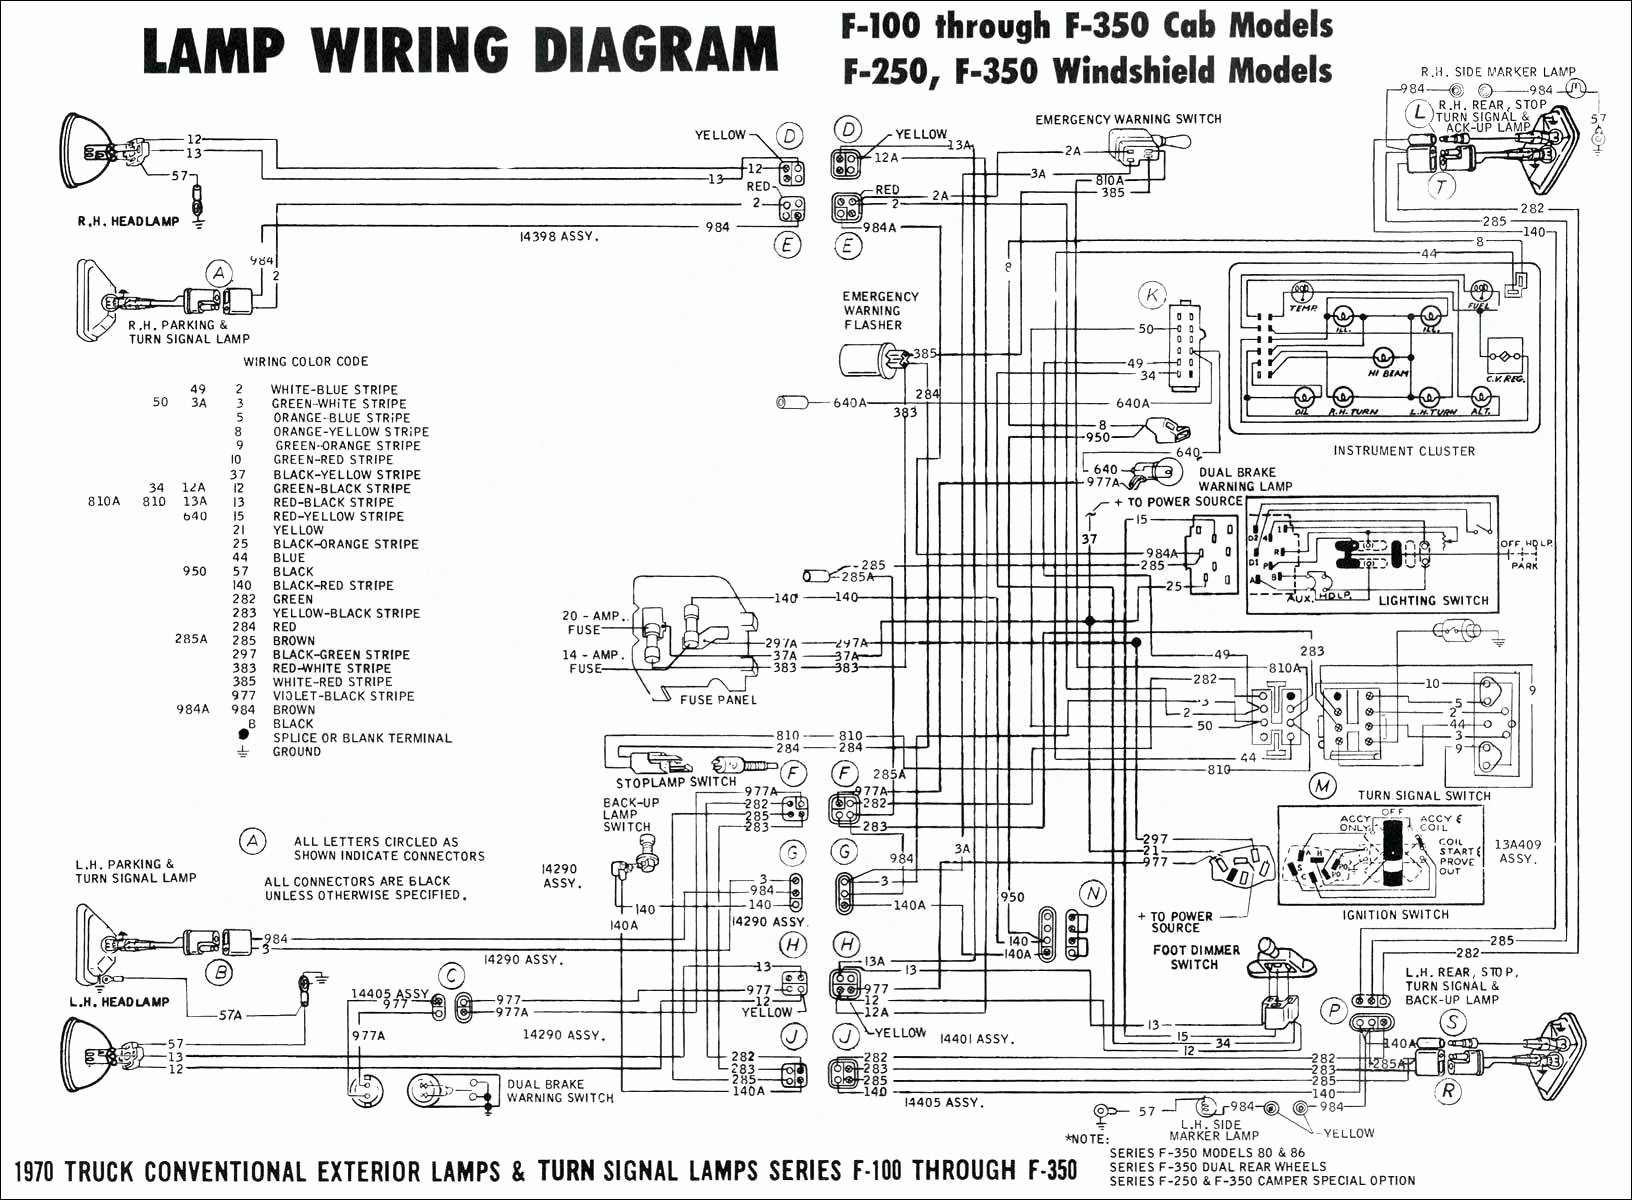 Wiring Diagram for Kib Mv22vwl Kib Enterprises Monitor Panels Manual Inspirational Of Wiring Diagram for Kib Mv22vwl